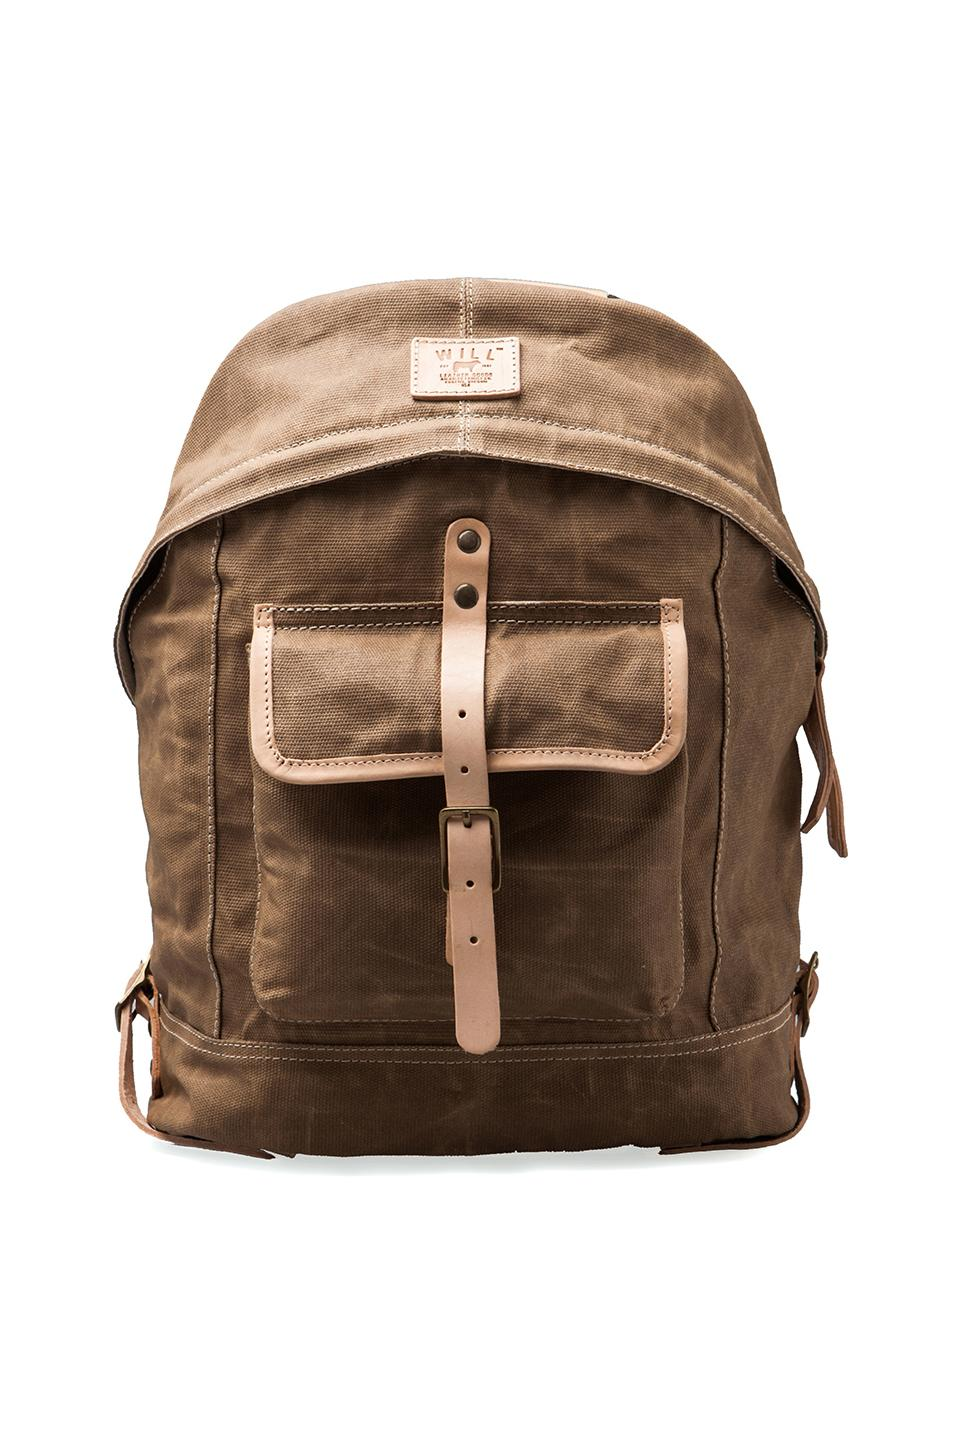 WILL Leather Goods Wax Coated Canvas Dome Backpack in Khaki